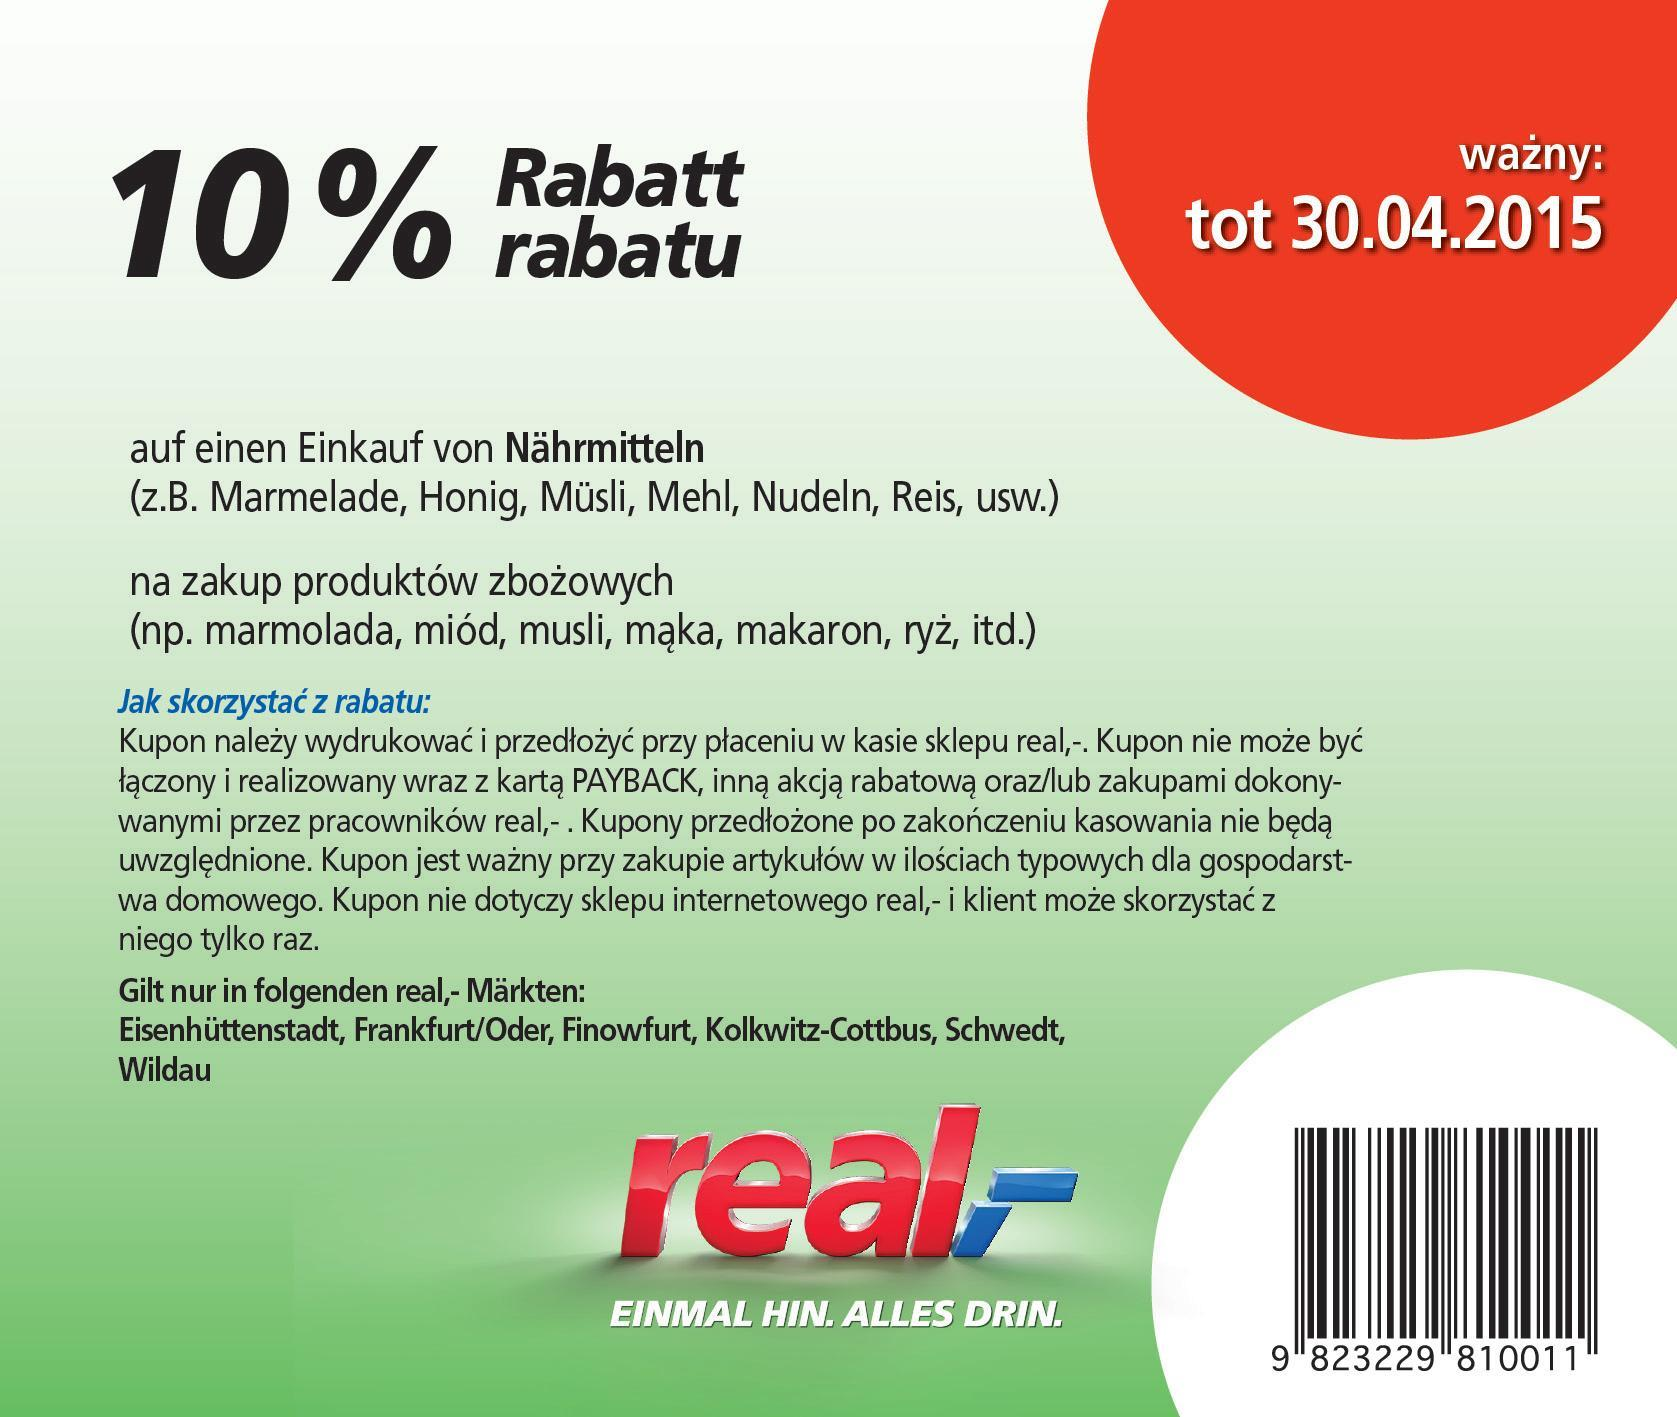 coupons_apr_2015_pl-pniznt.jpg